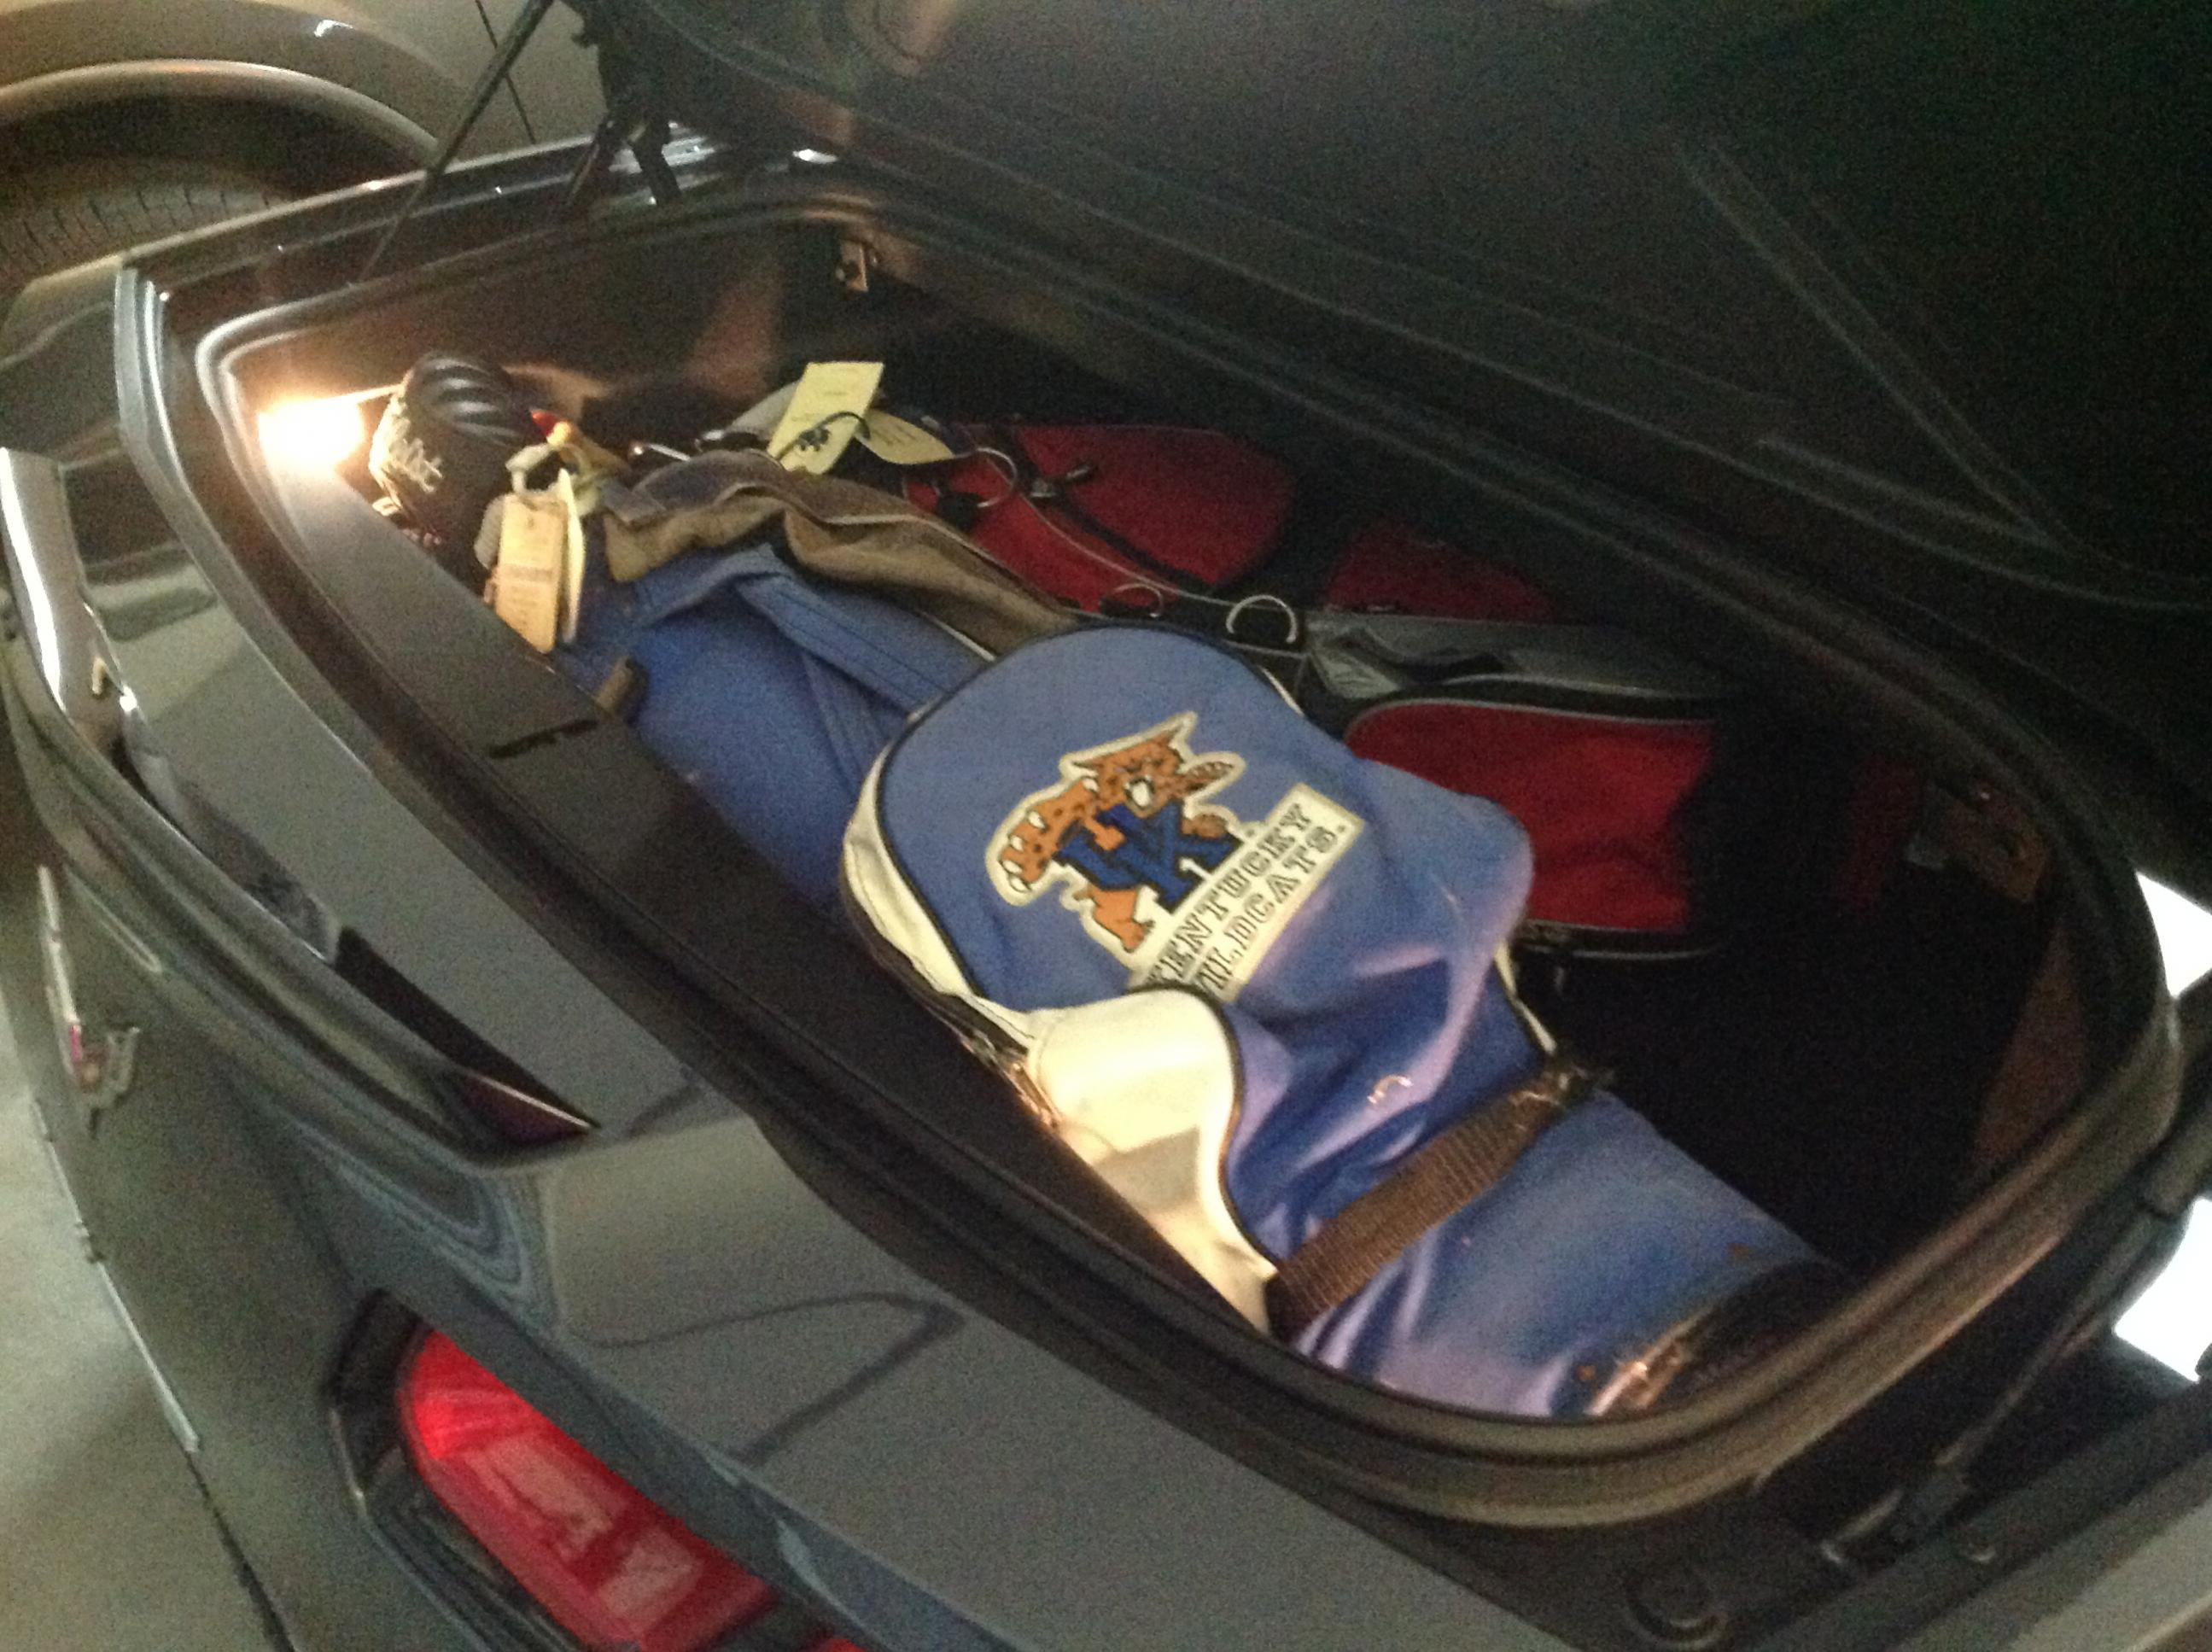 Two Sets Of Golf Clubs In Vert Trunk